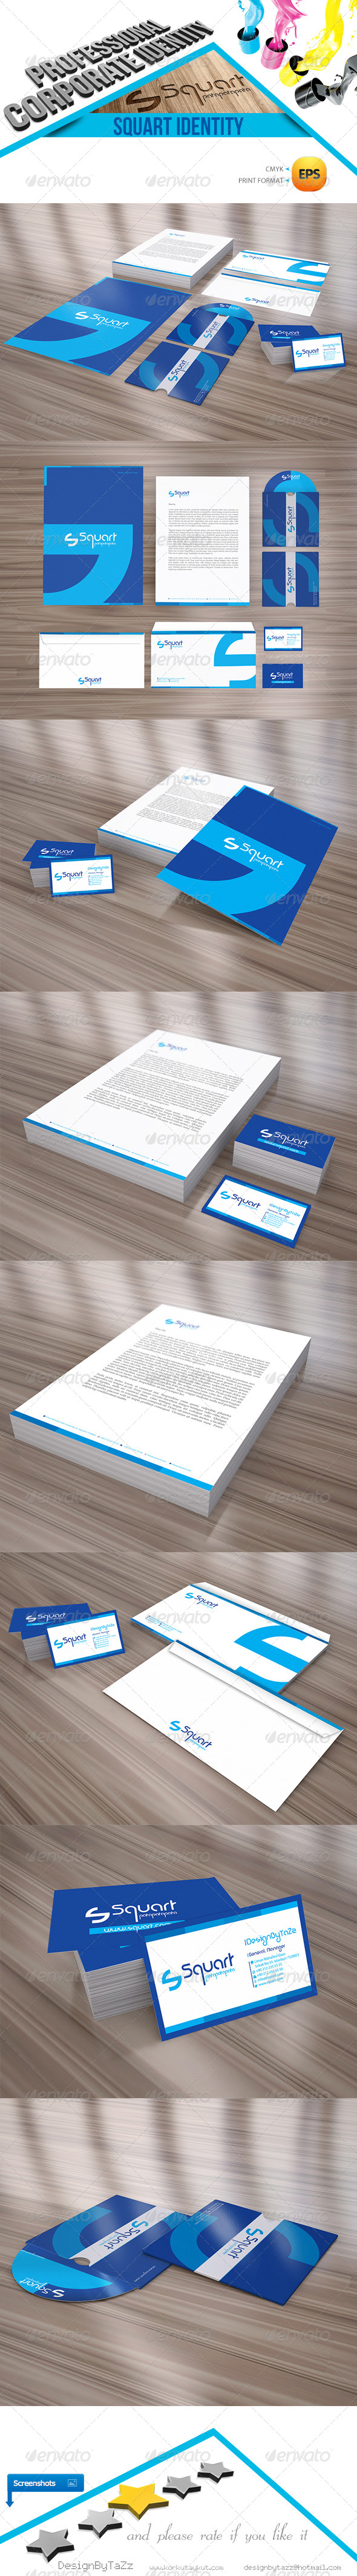 Squart Corporate Identity Package - Stationery Print Templates